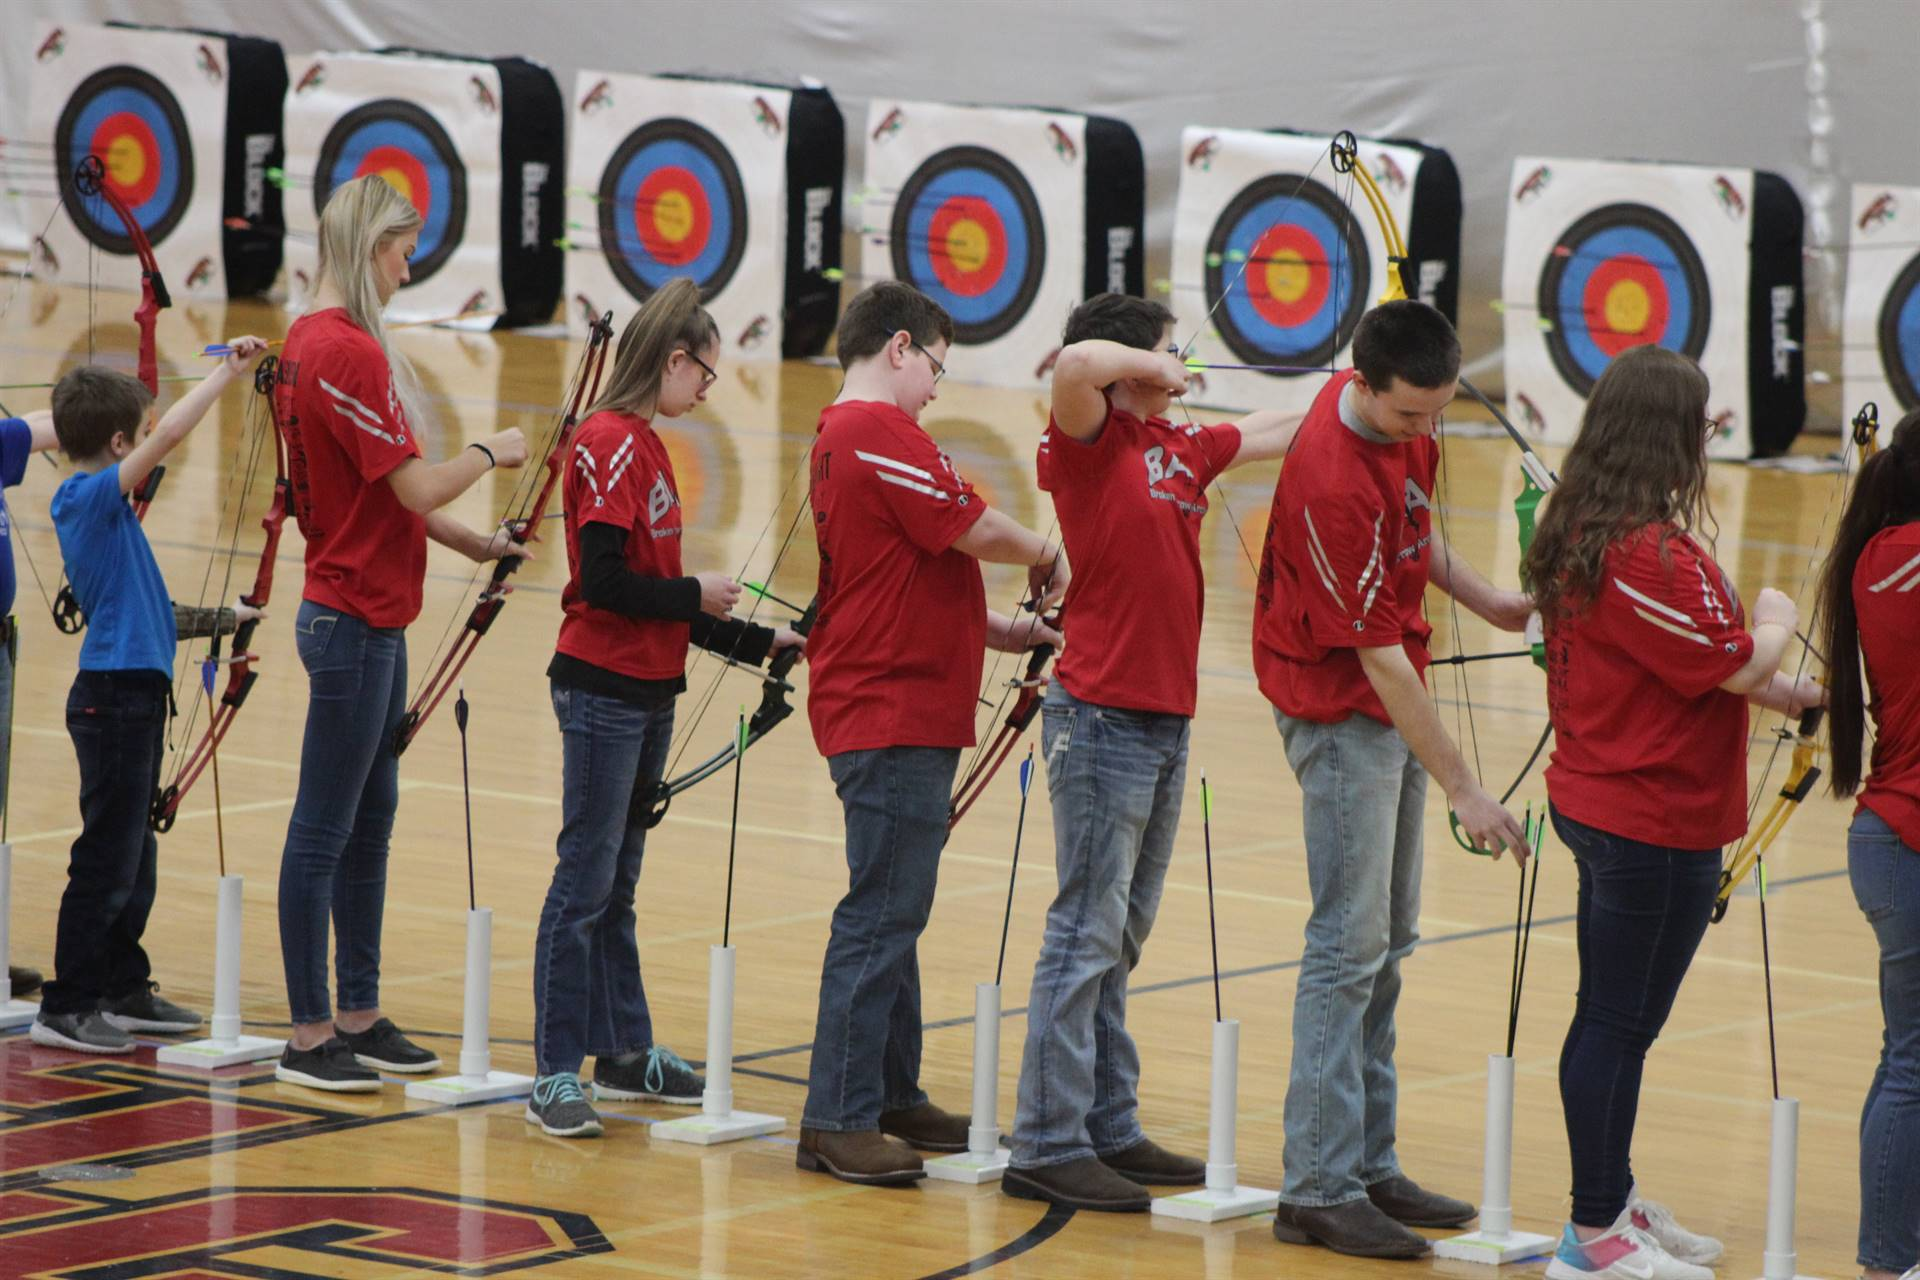 students lined up preparing to shoot arrows at targets in a gym